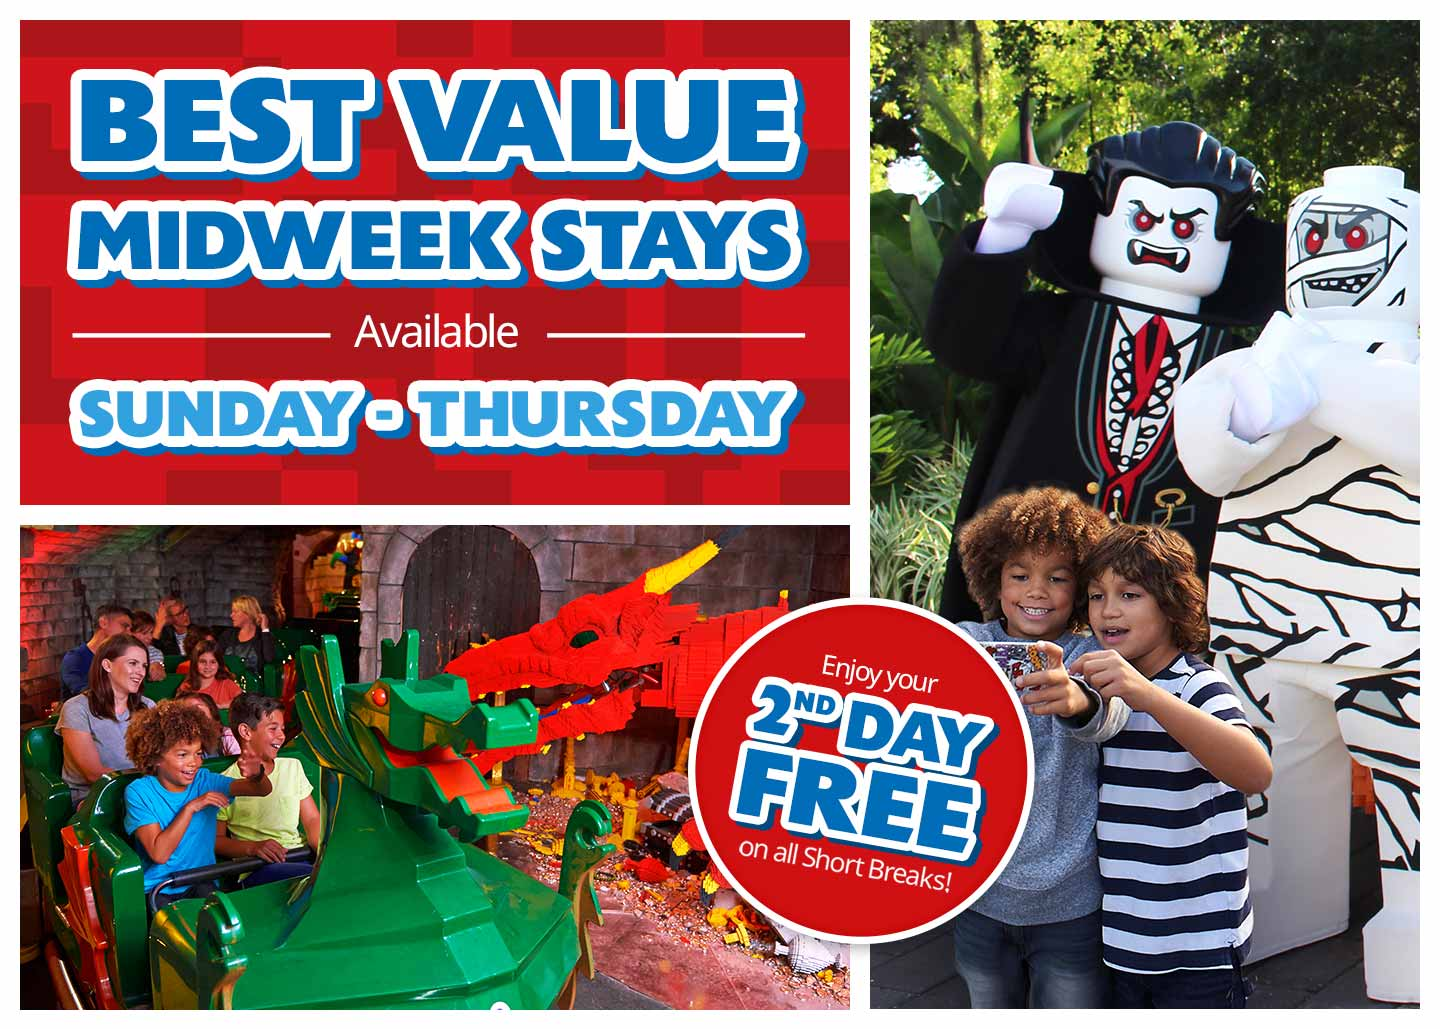 Best Value Midweek Breaks at LEGOLAND Windsor Resort!